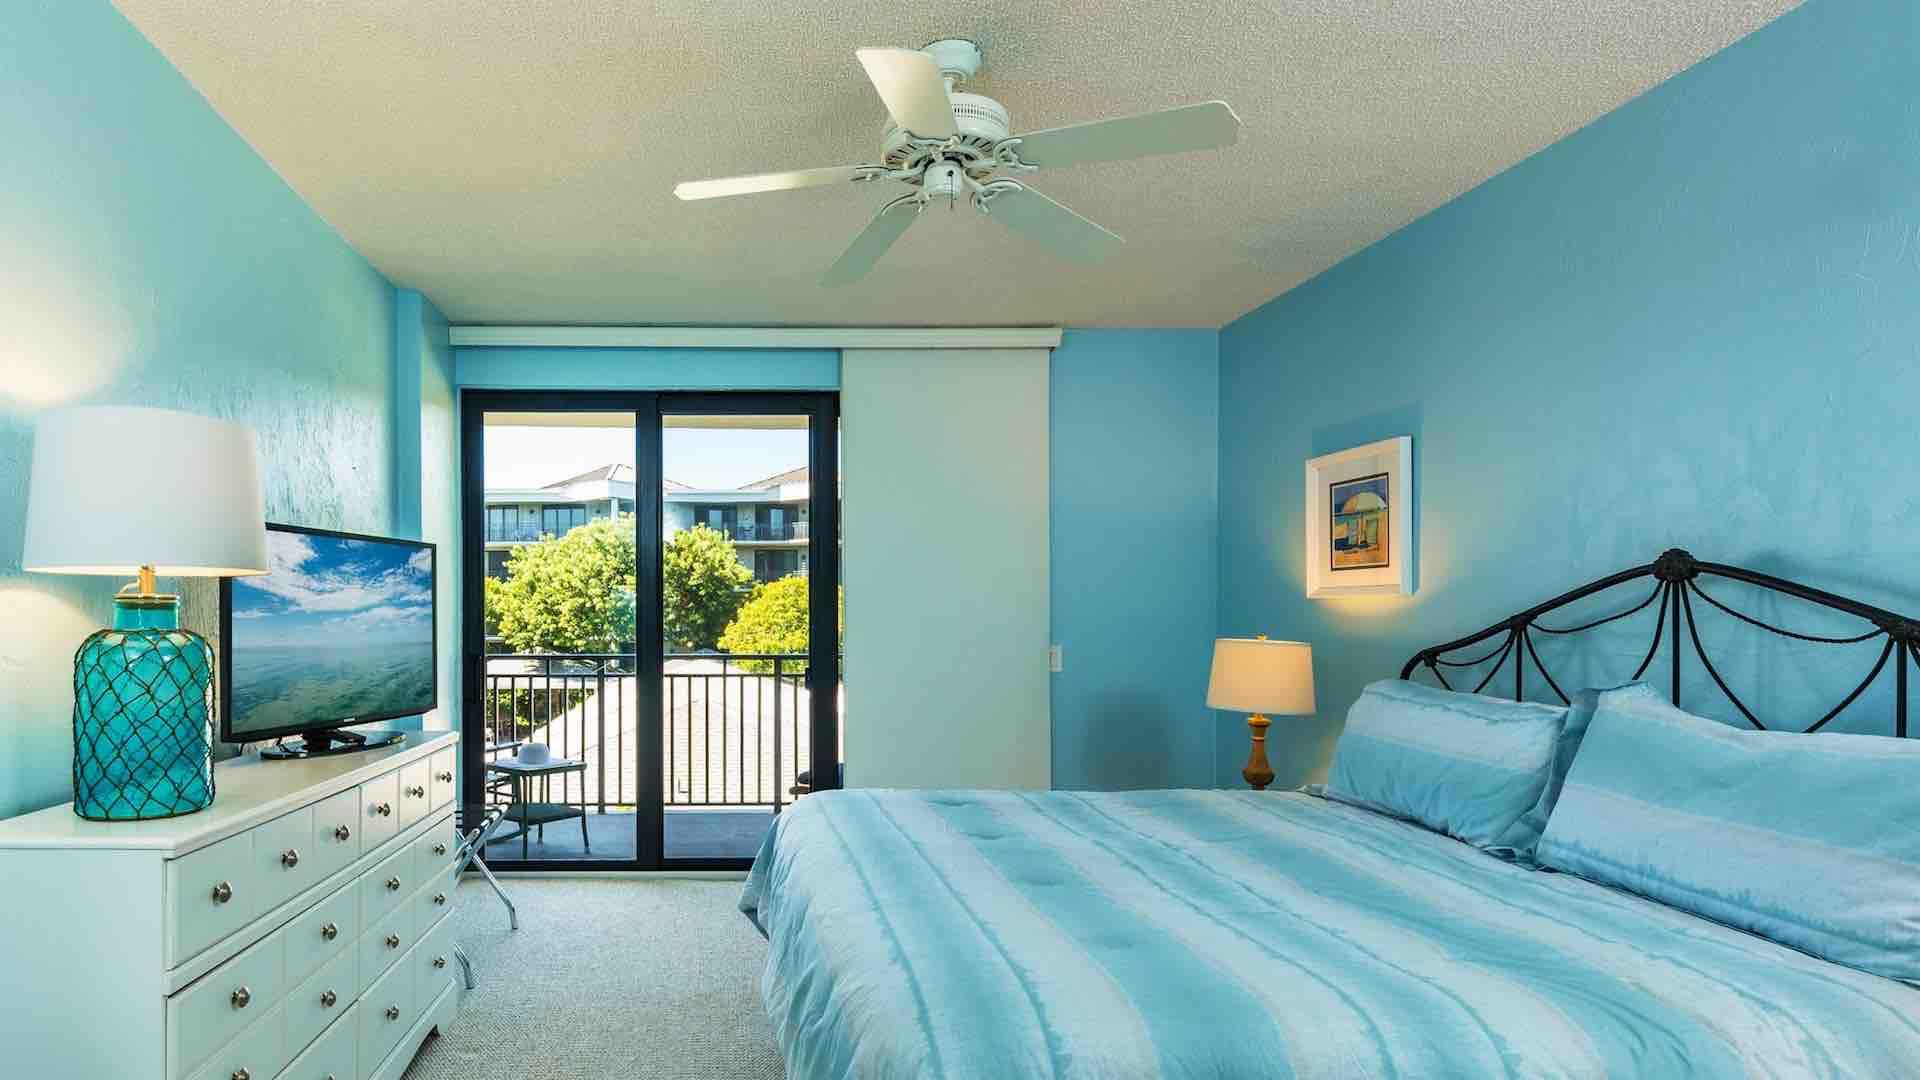 The master bedroom has a king bed and access to the large balcony...